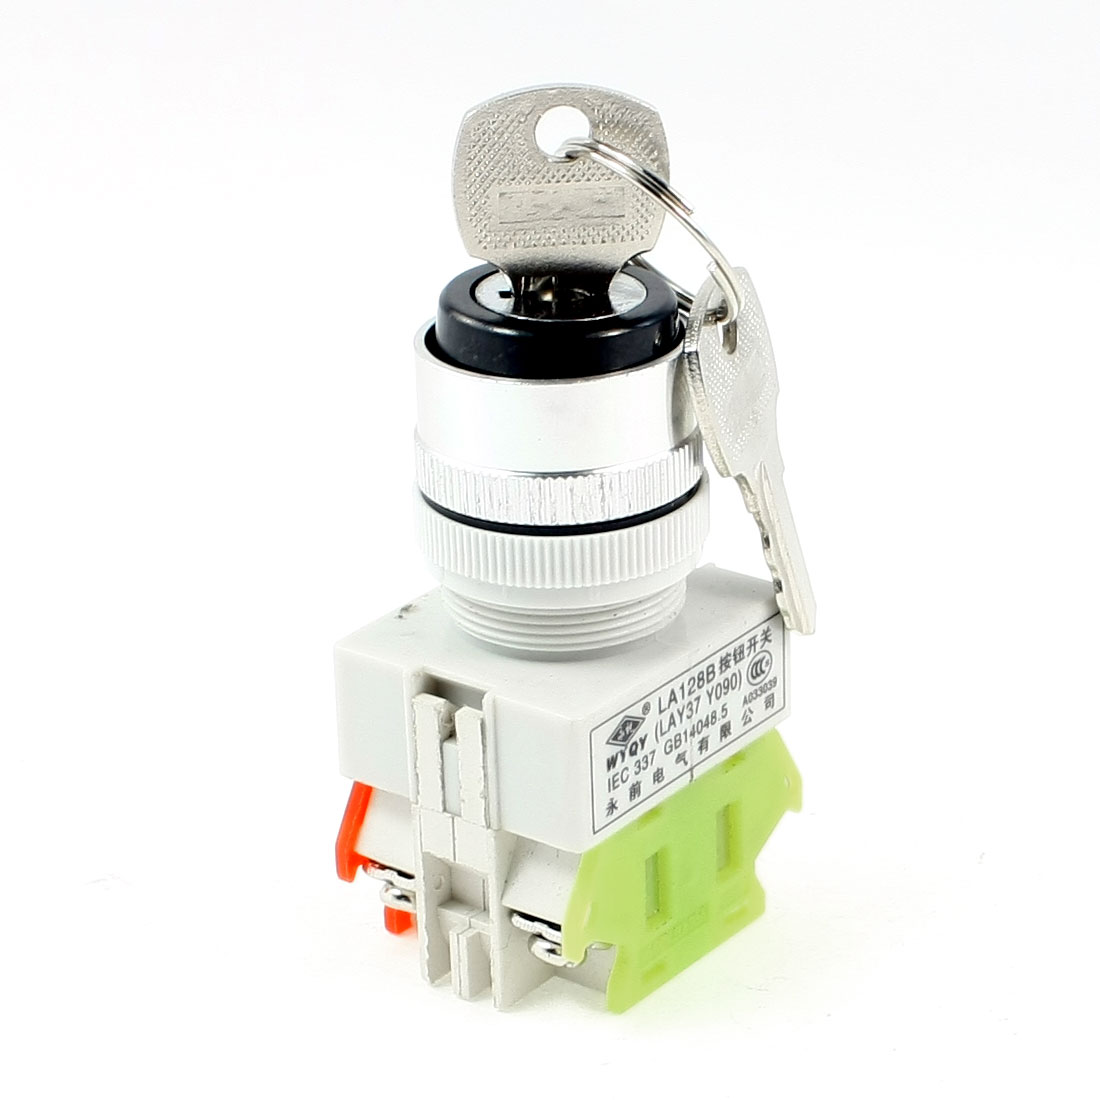 AC 660V 10A 1NO 1NC DPST Key Rotary Start Locking Style Push Button Switch